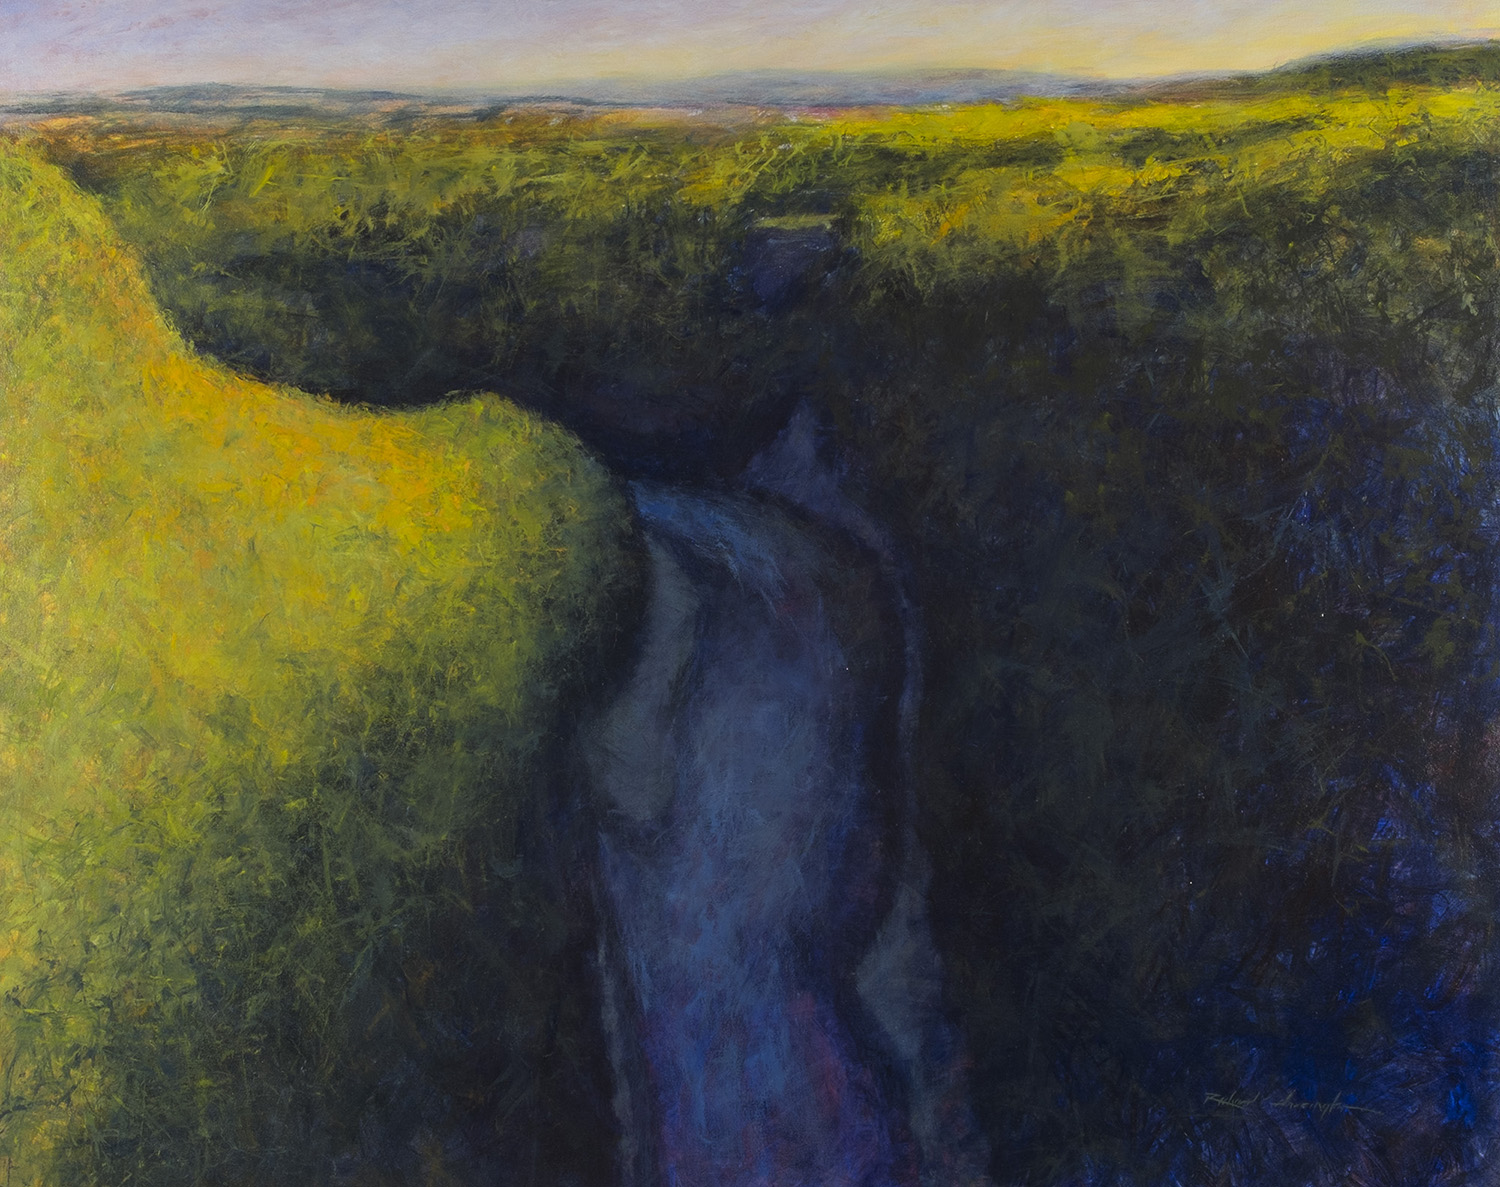 Genesee River at Letchworth, 48 x 60 inches, oil on canvas. Available through the artist.